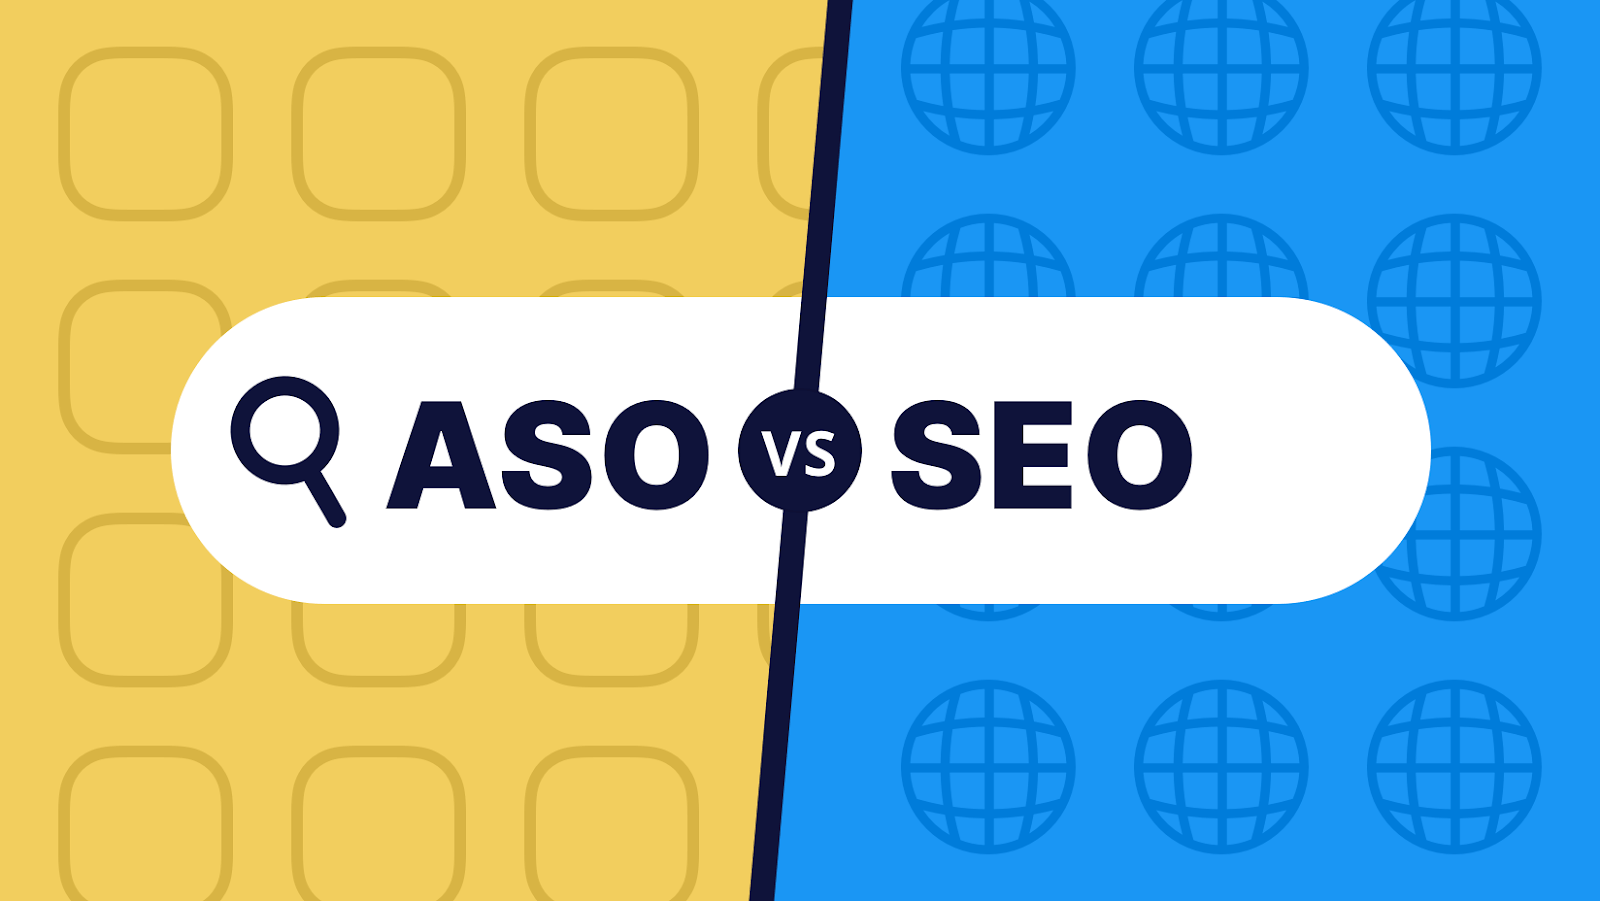 The Contrast between ASO and SEO